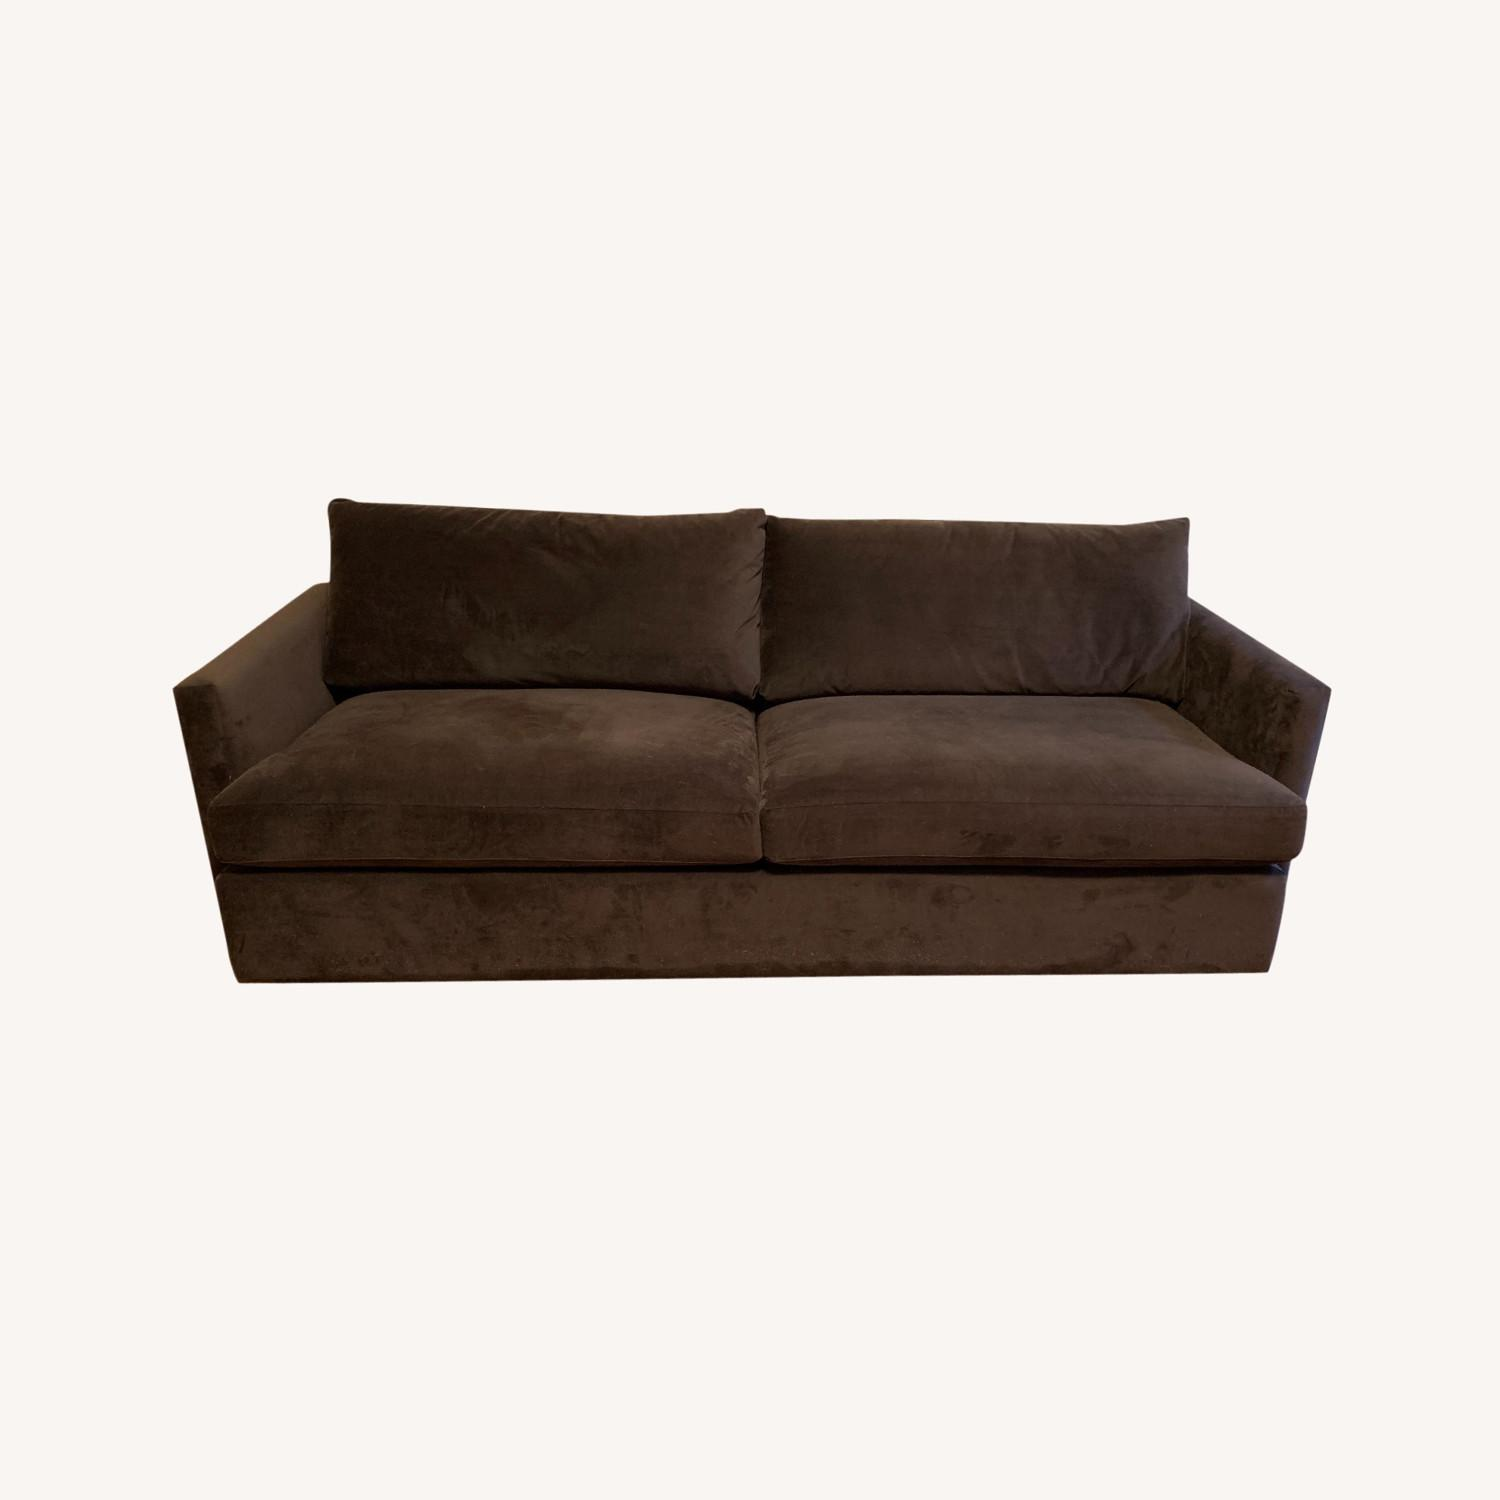 Crate and Barrel Chocolate Velvet Lounge Sofa - image-0